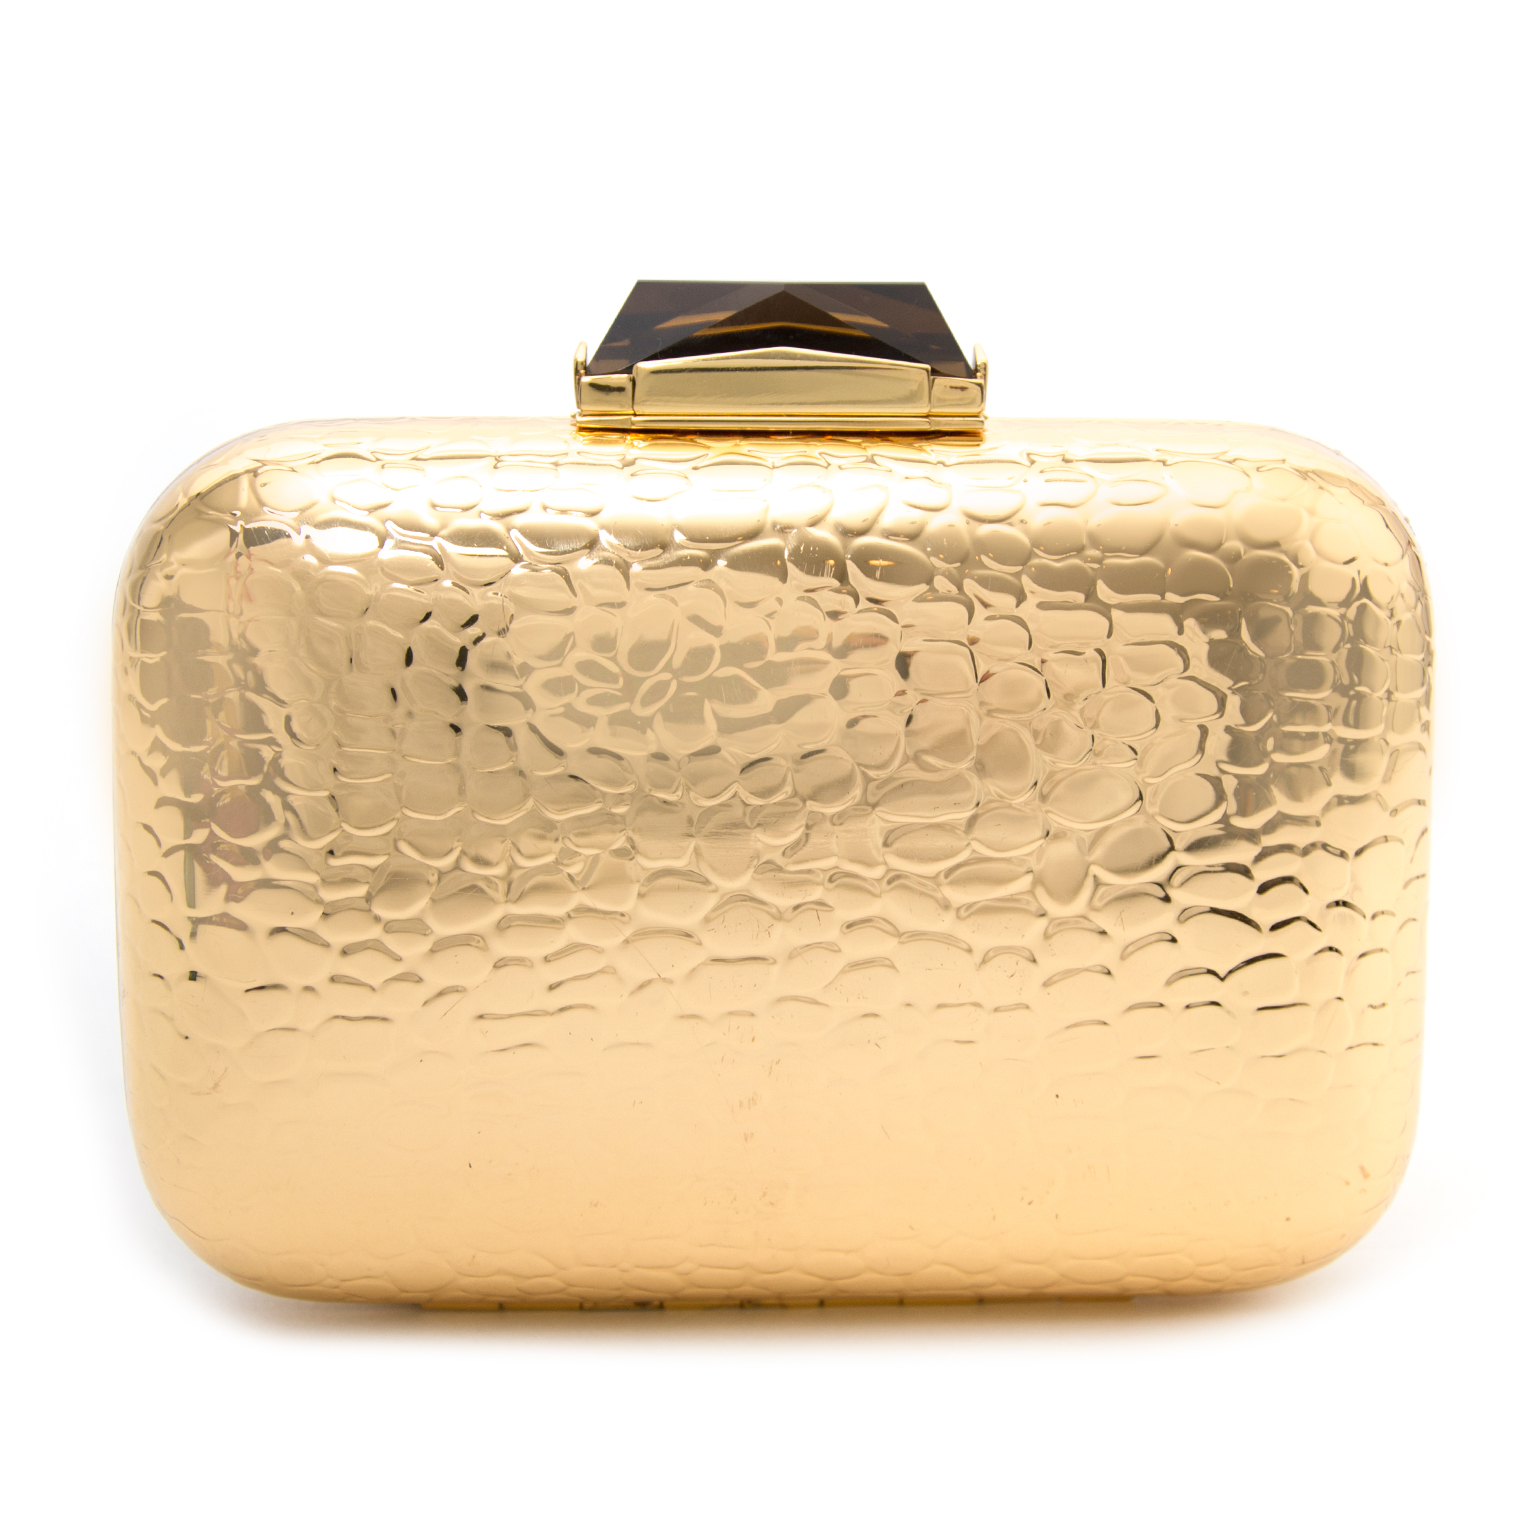 Looking to buy a new authentic Kotur Morley Croc Embossed Gold Metal Box Clutch?